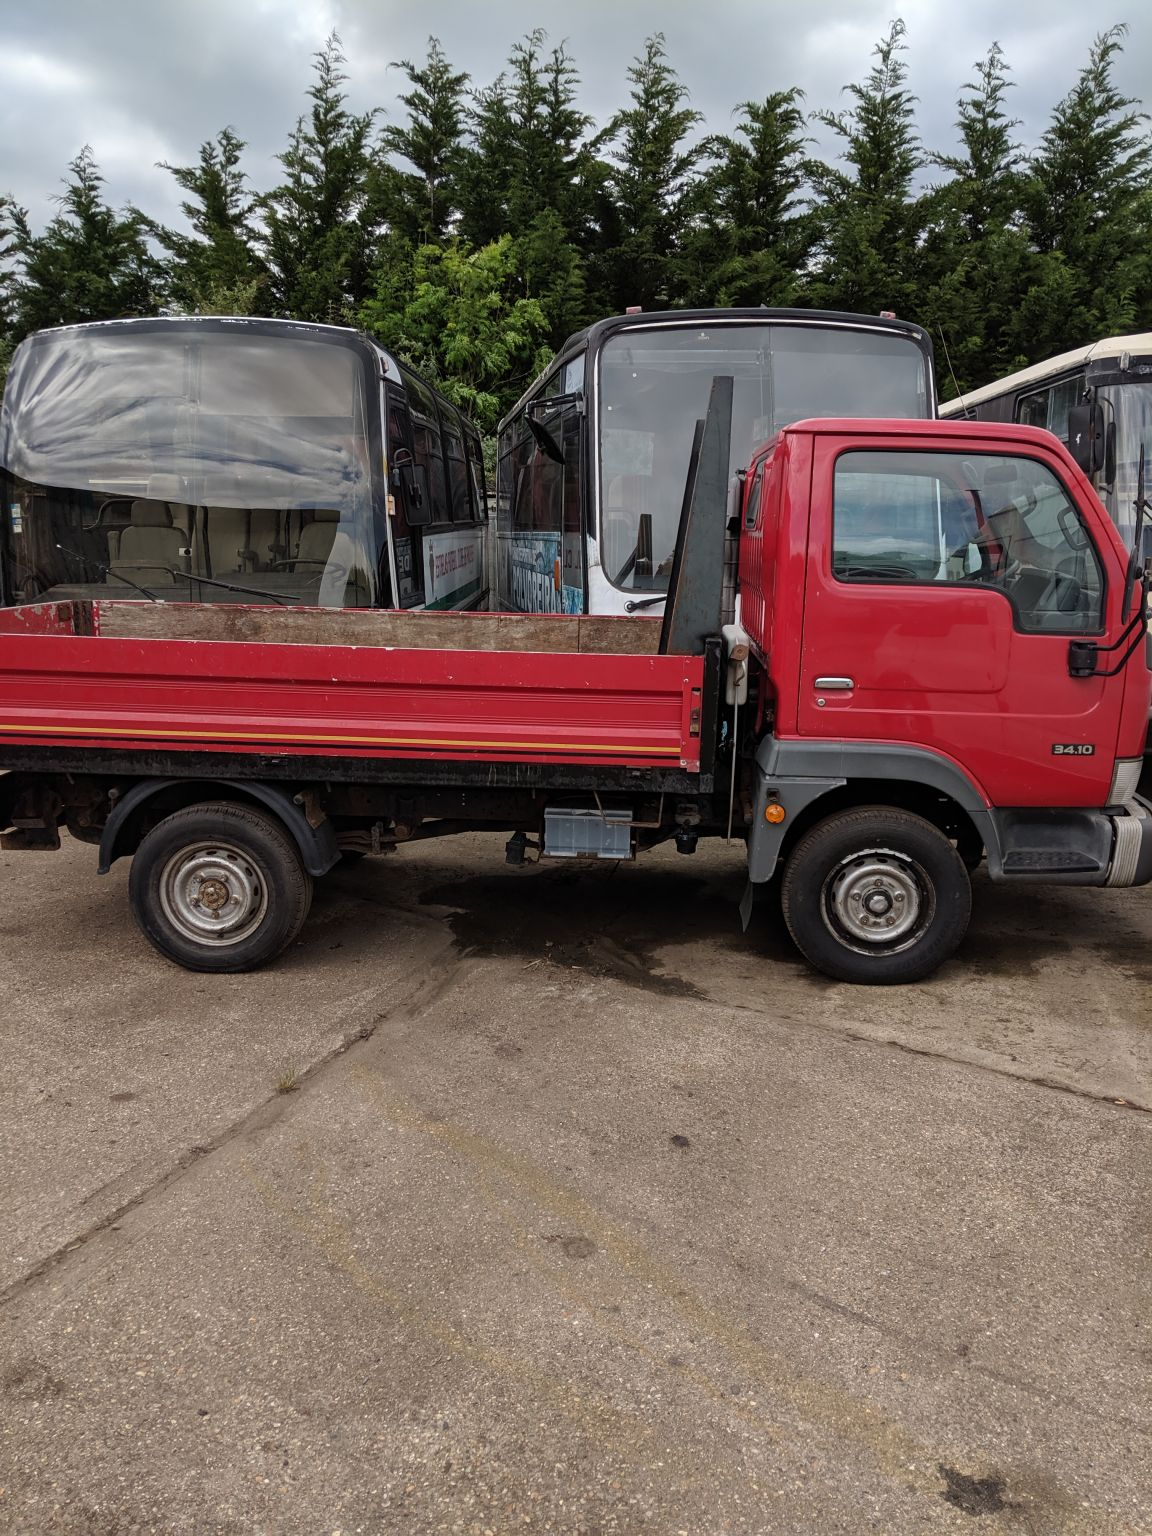 Nissan Cabstar 3500gvw,Tipper, 2006, New engine and clutch recently fitted